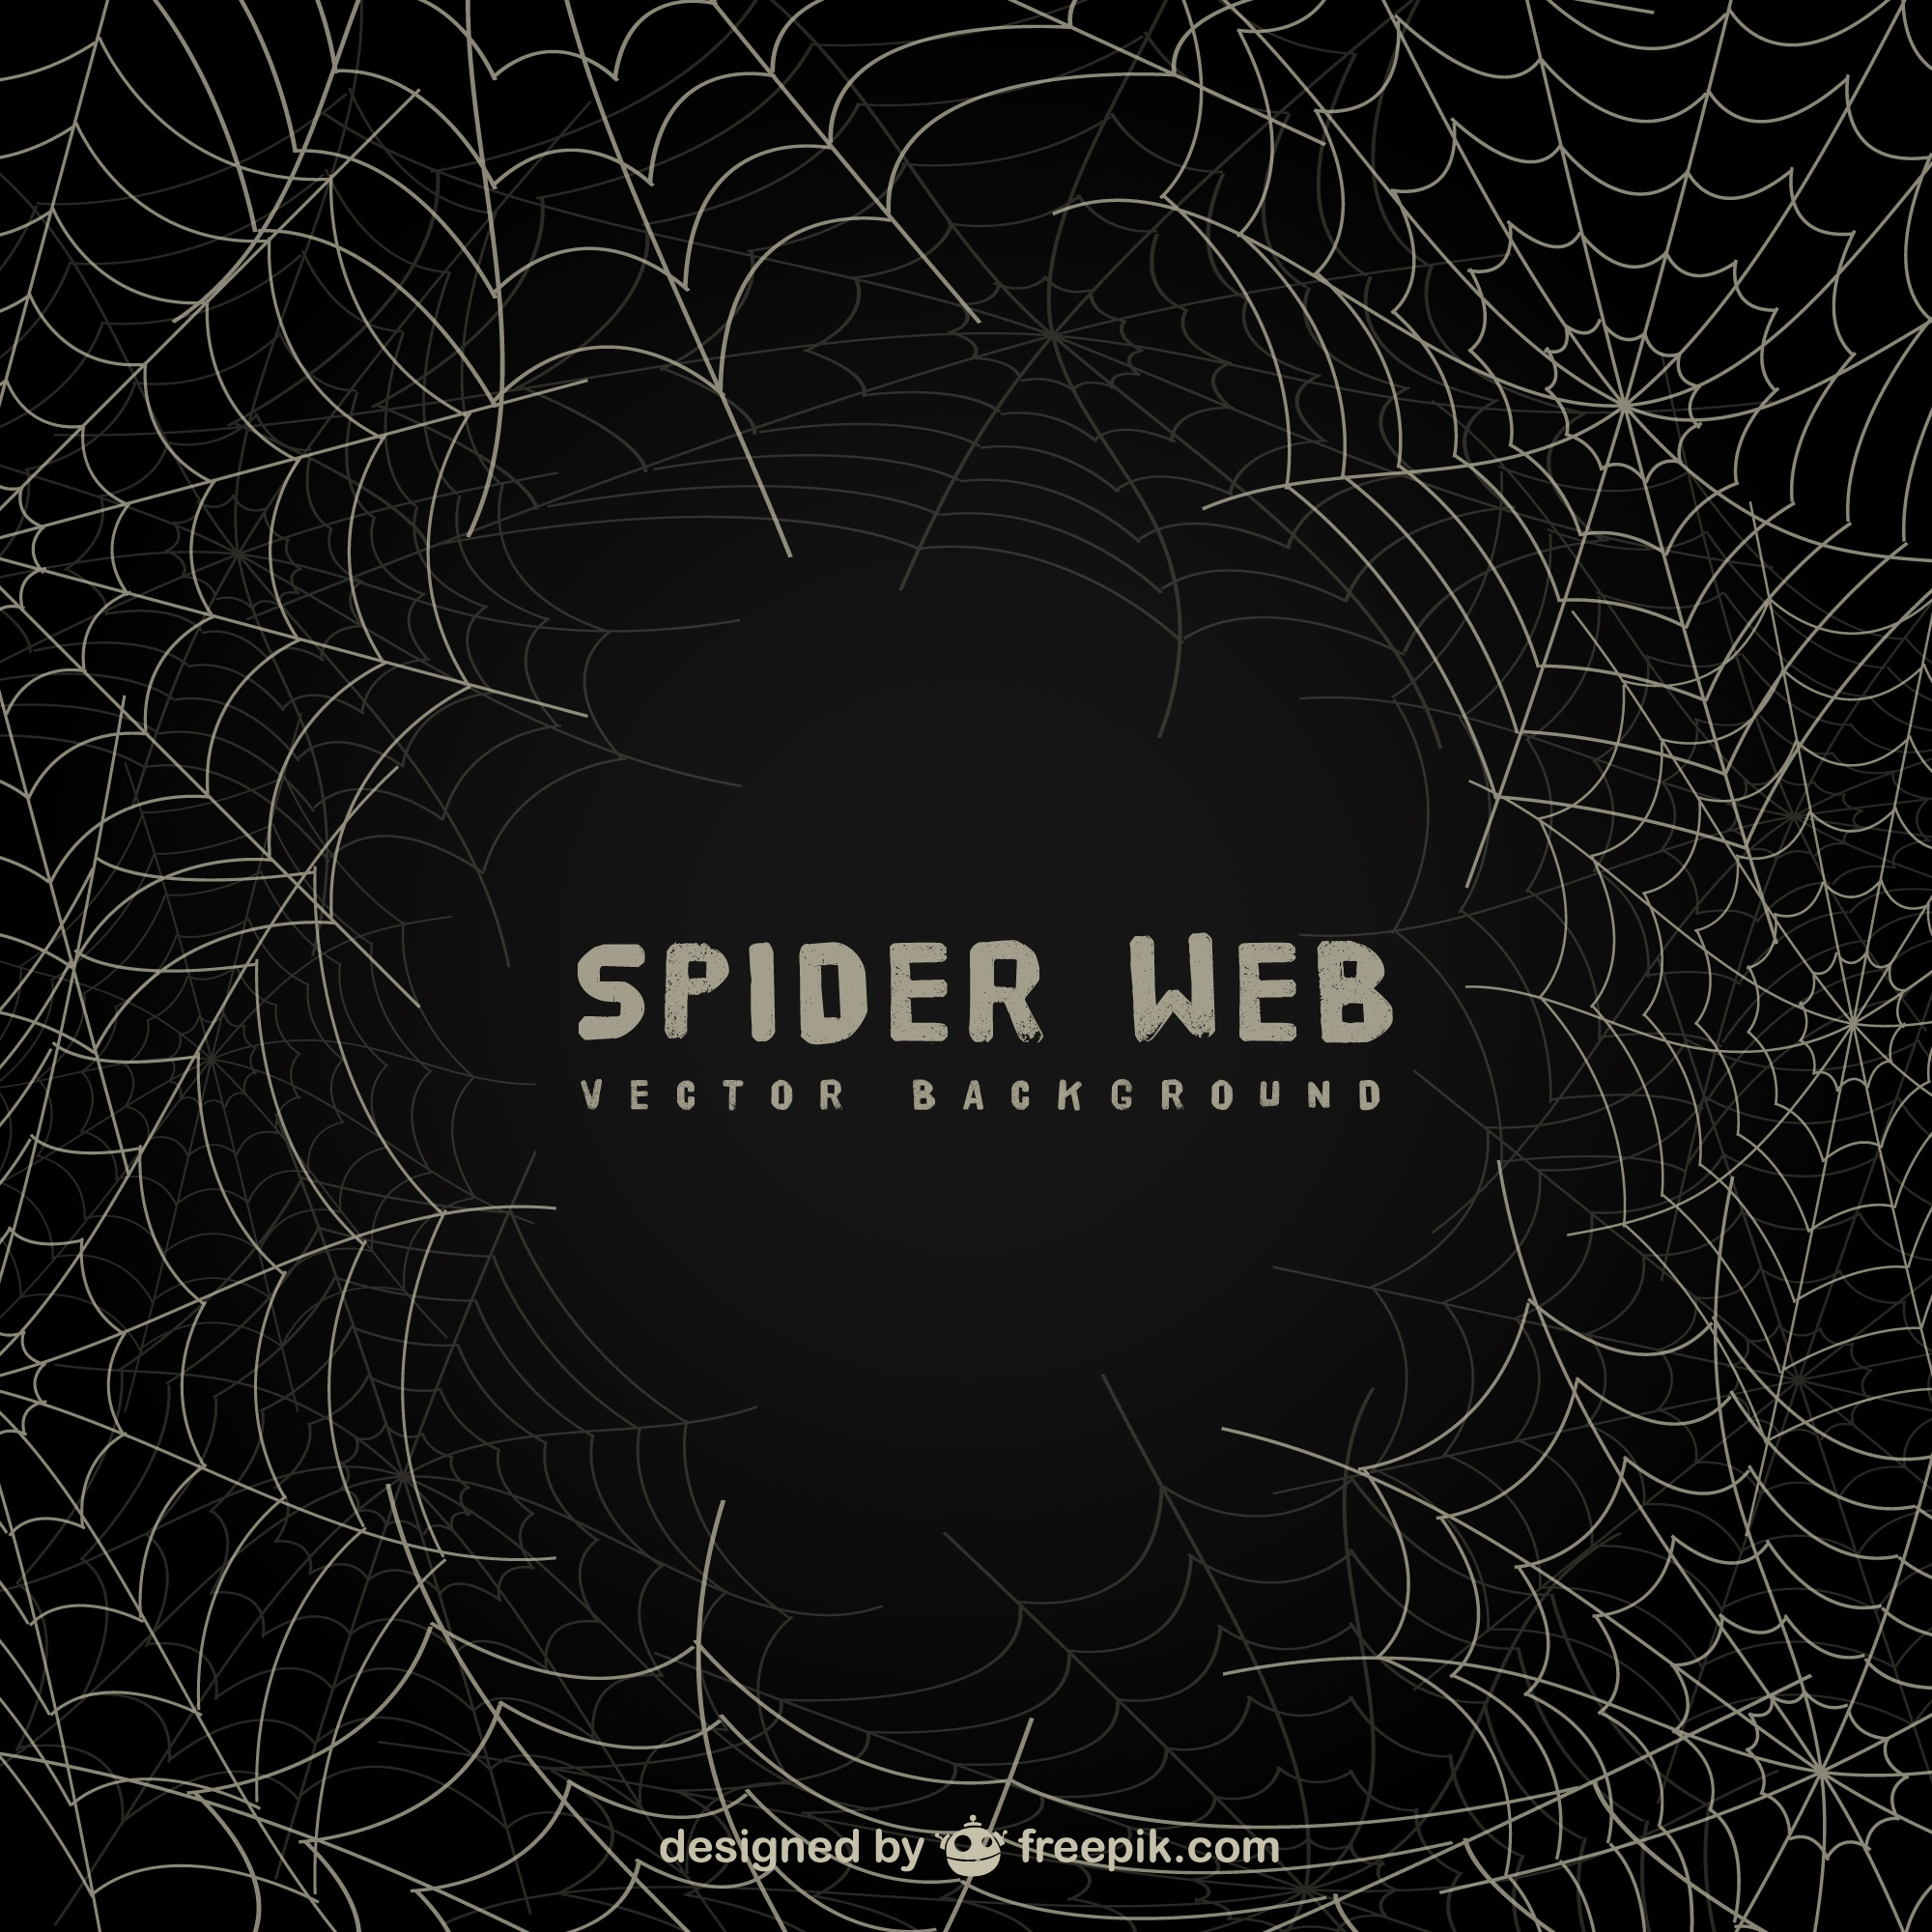 Spider web background sulla lavagna